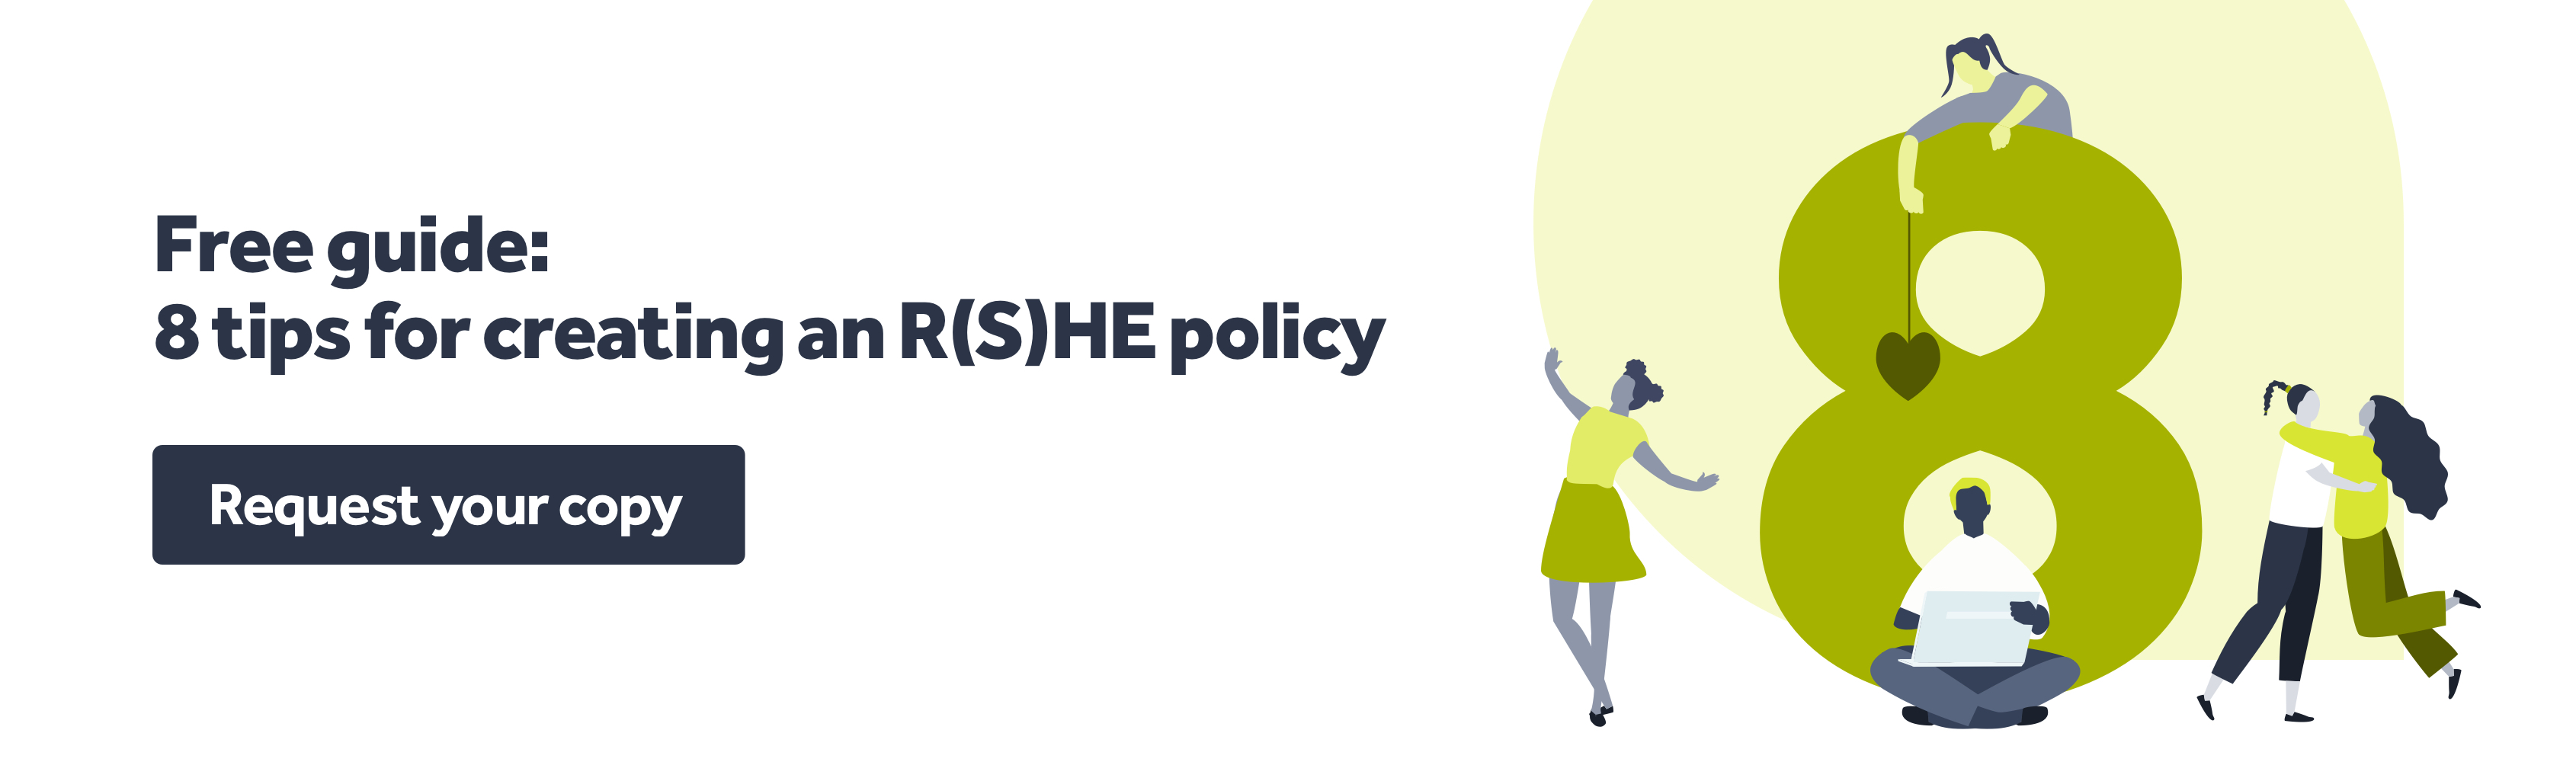 Download 8 tips for creating your R(S)HE policy